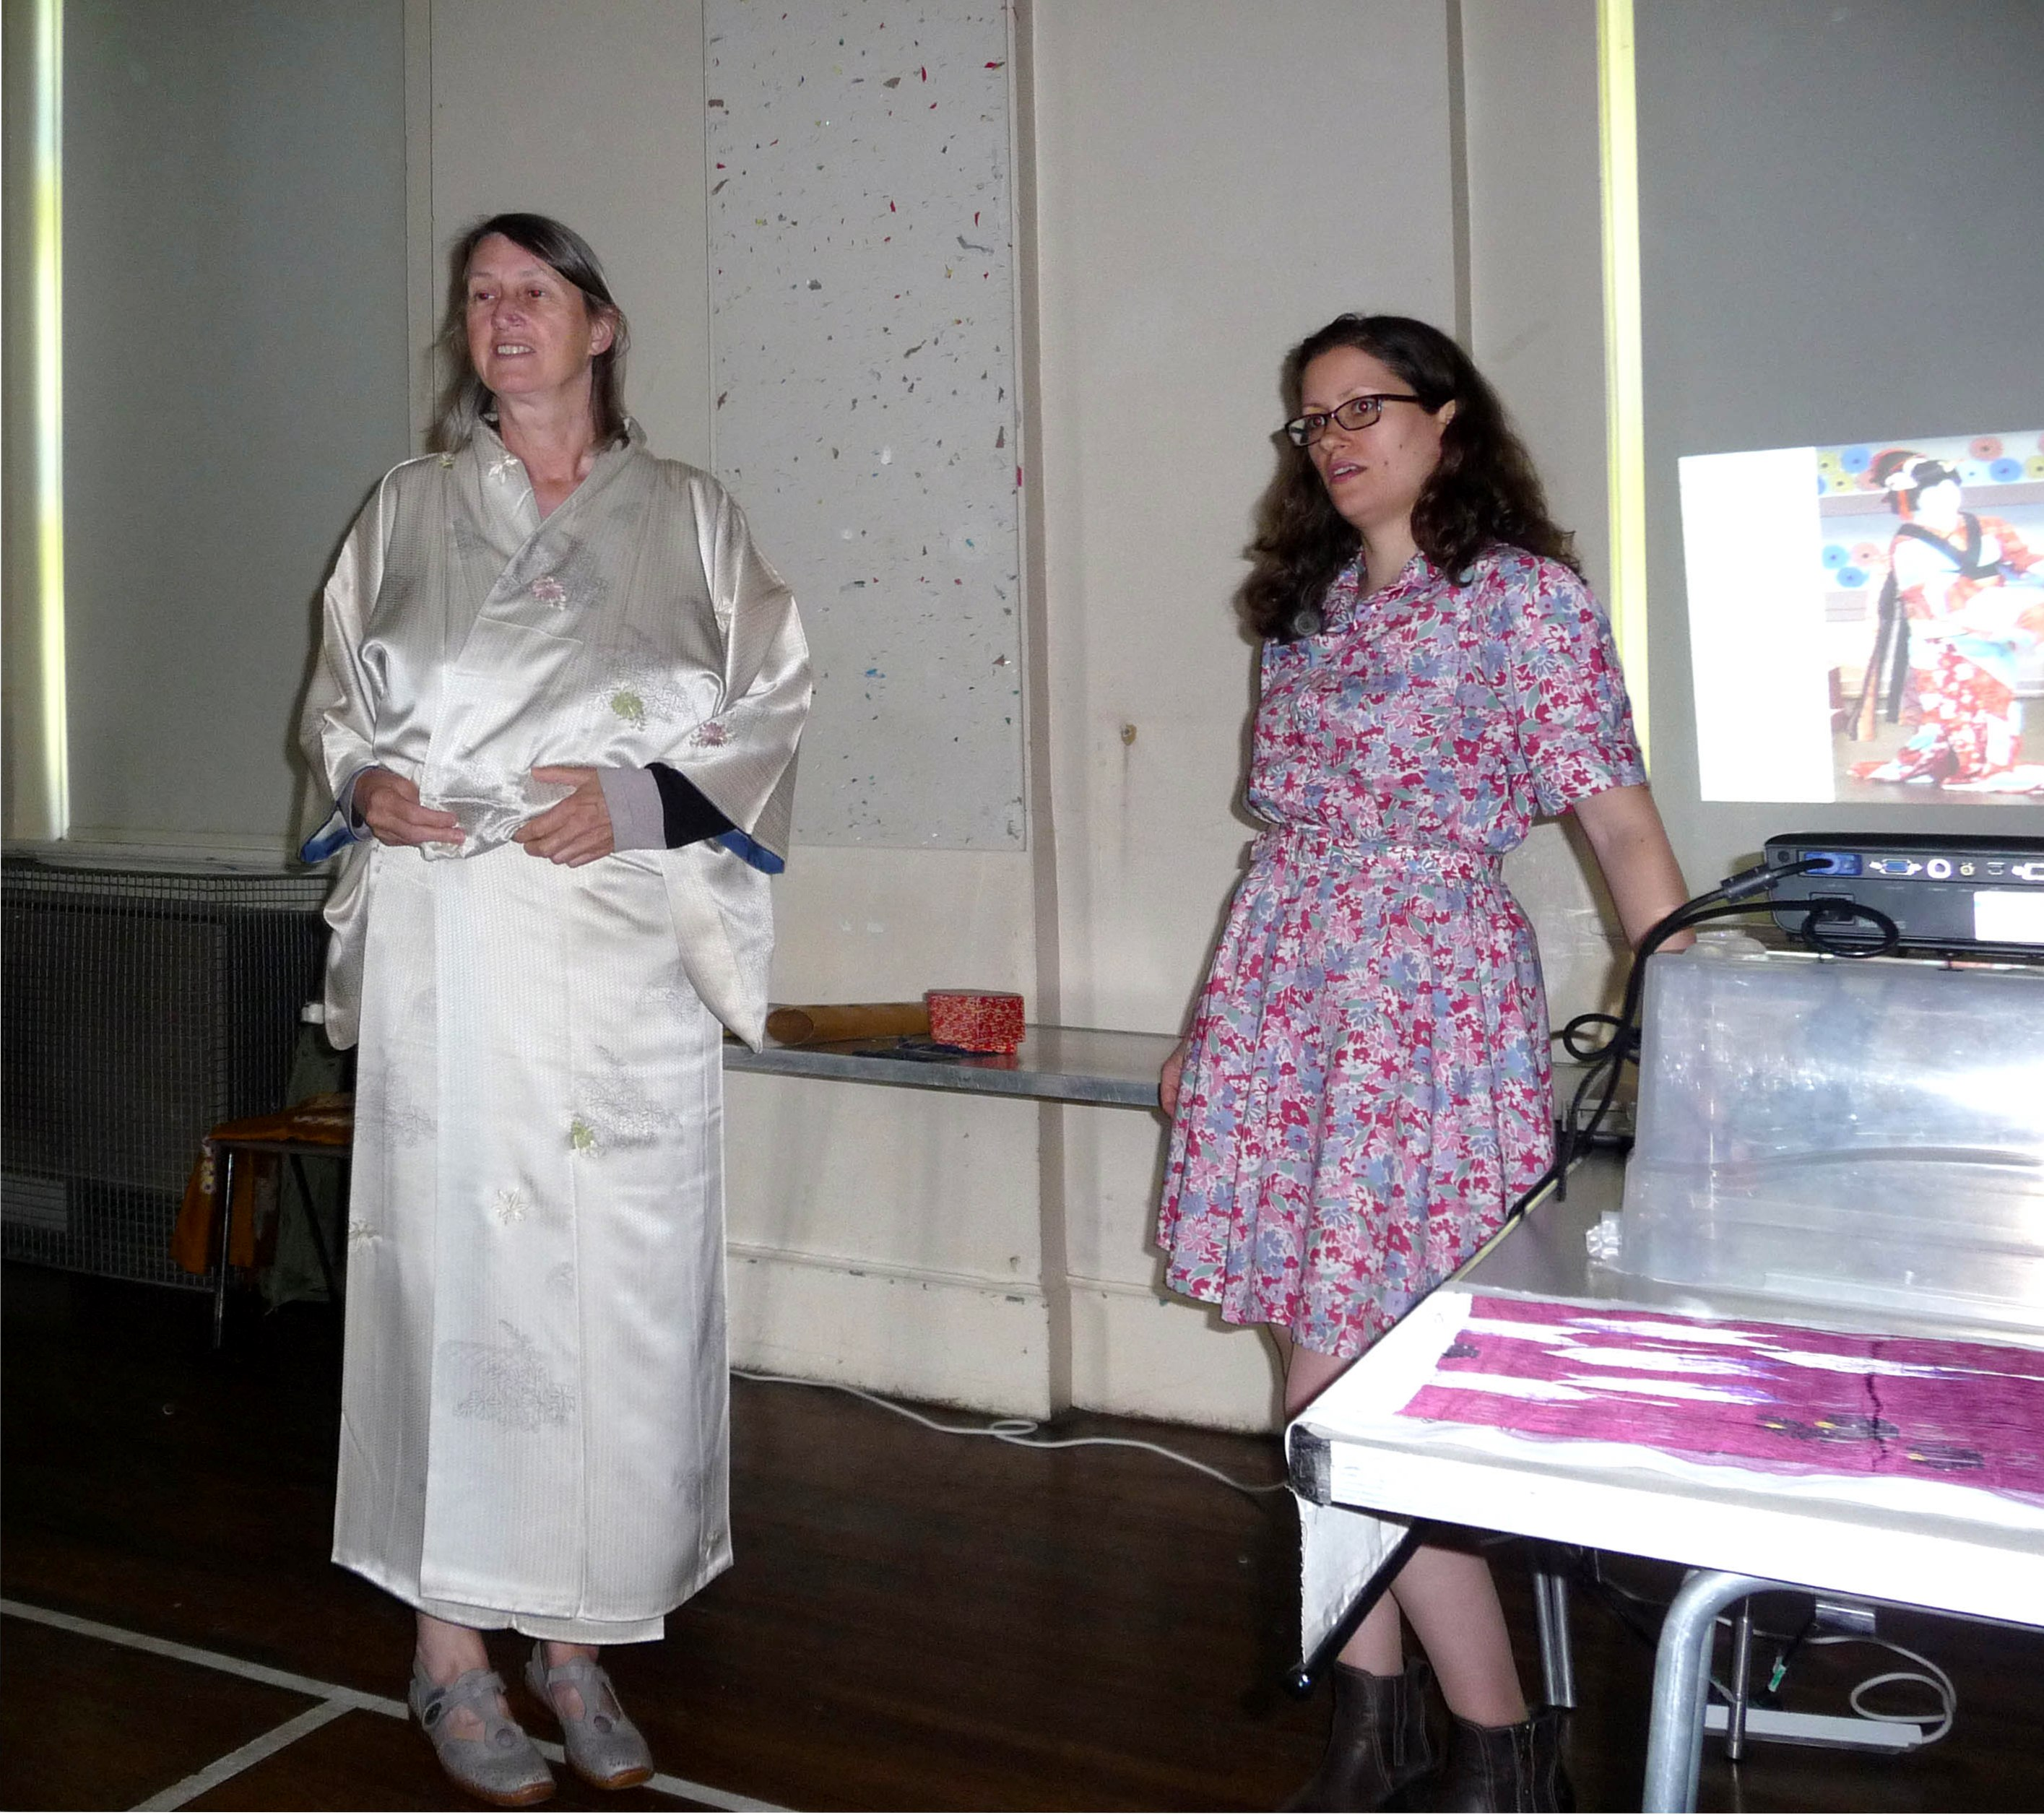 Helen Patrick modelling a kimono with Katie Chaplin at Japanese Day 2014